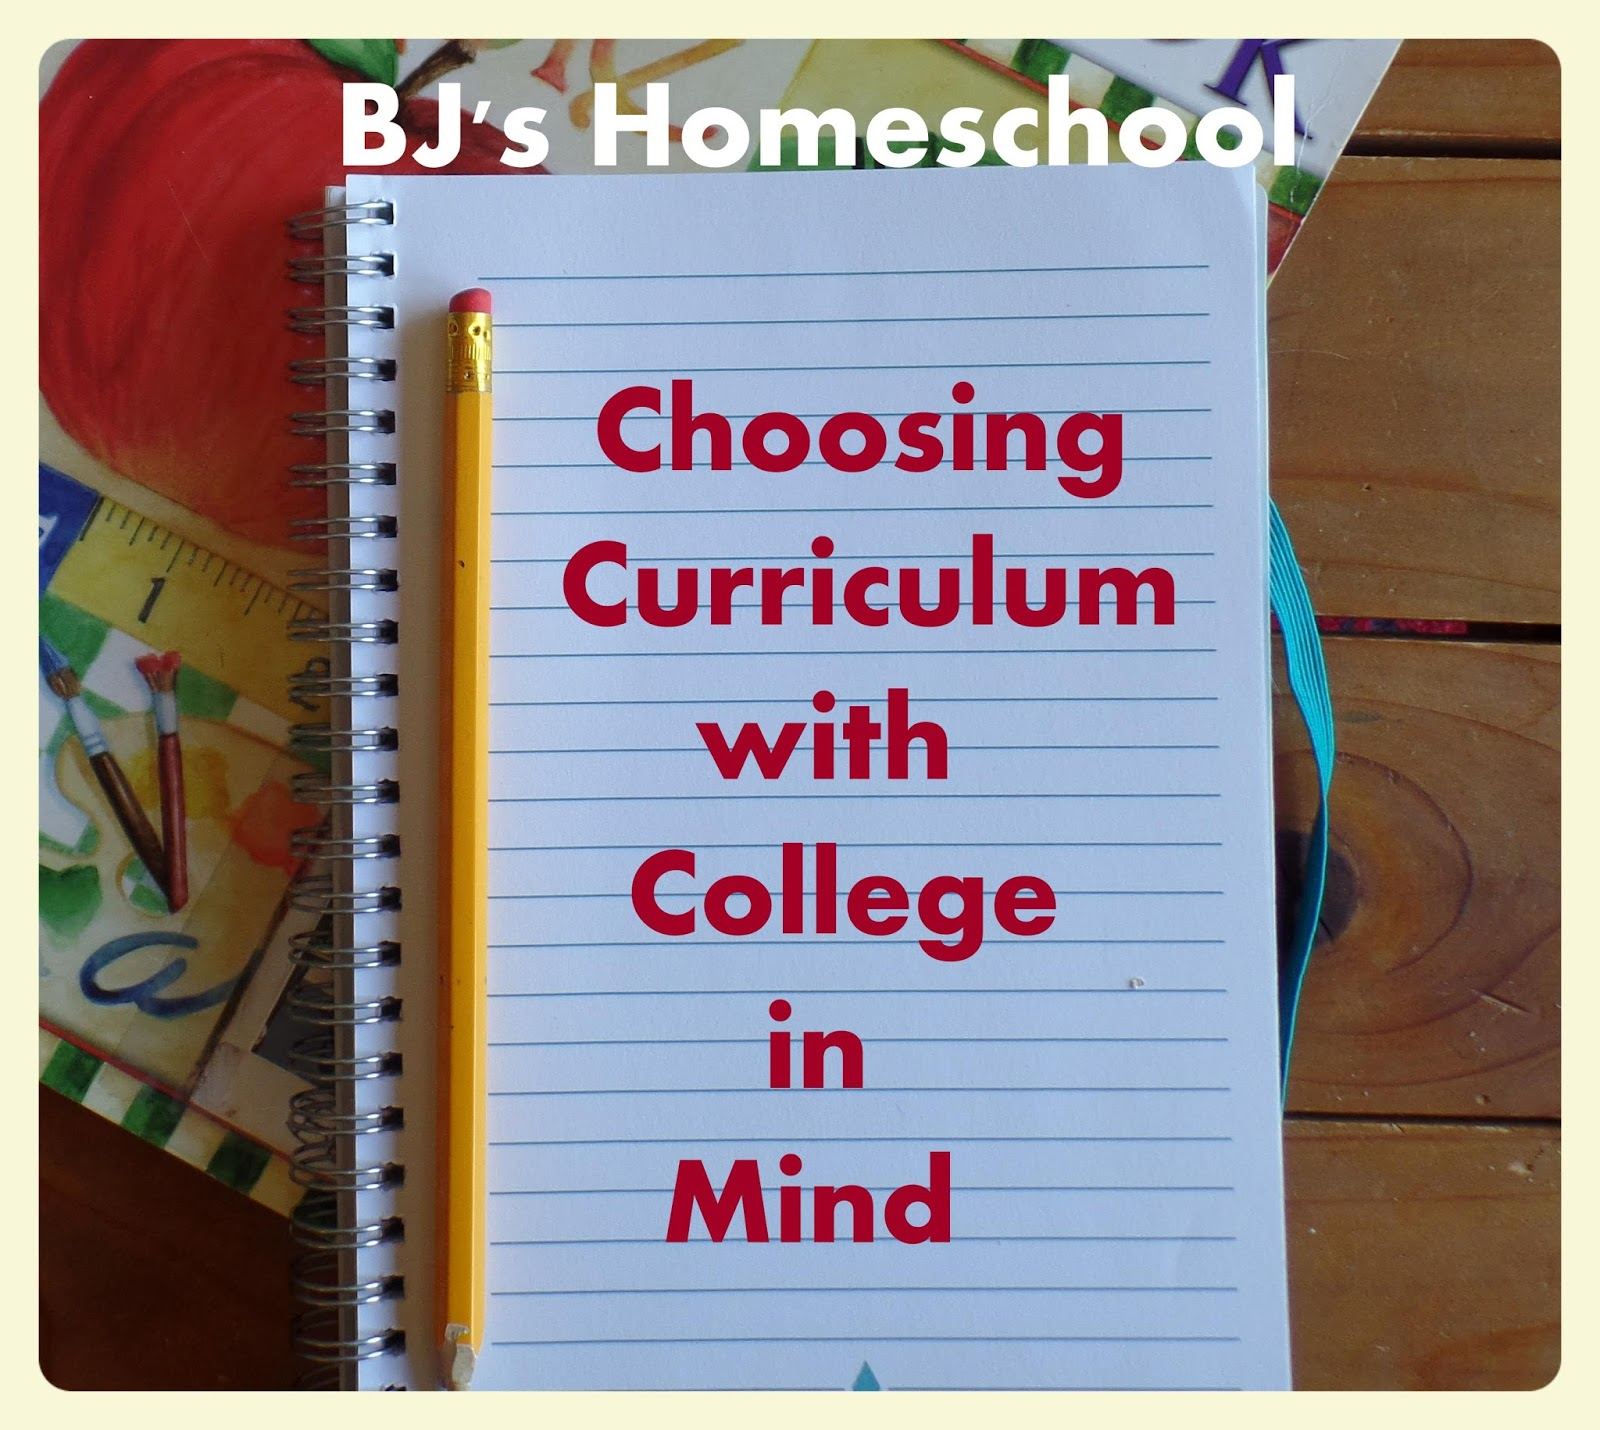 bj s homeschool our journey towards college choosing curriculum choosing curriculum for your high schooler who is aiming towards college well that really can t be hard for us as homeschoolers we are experts at